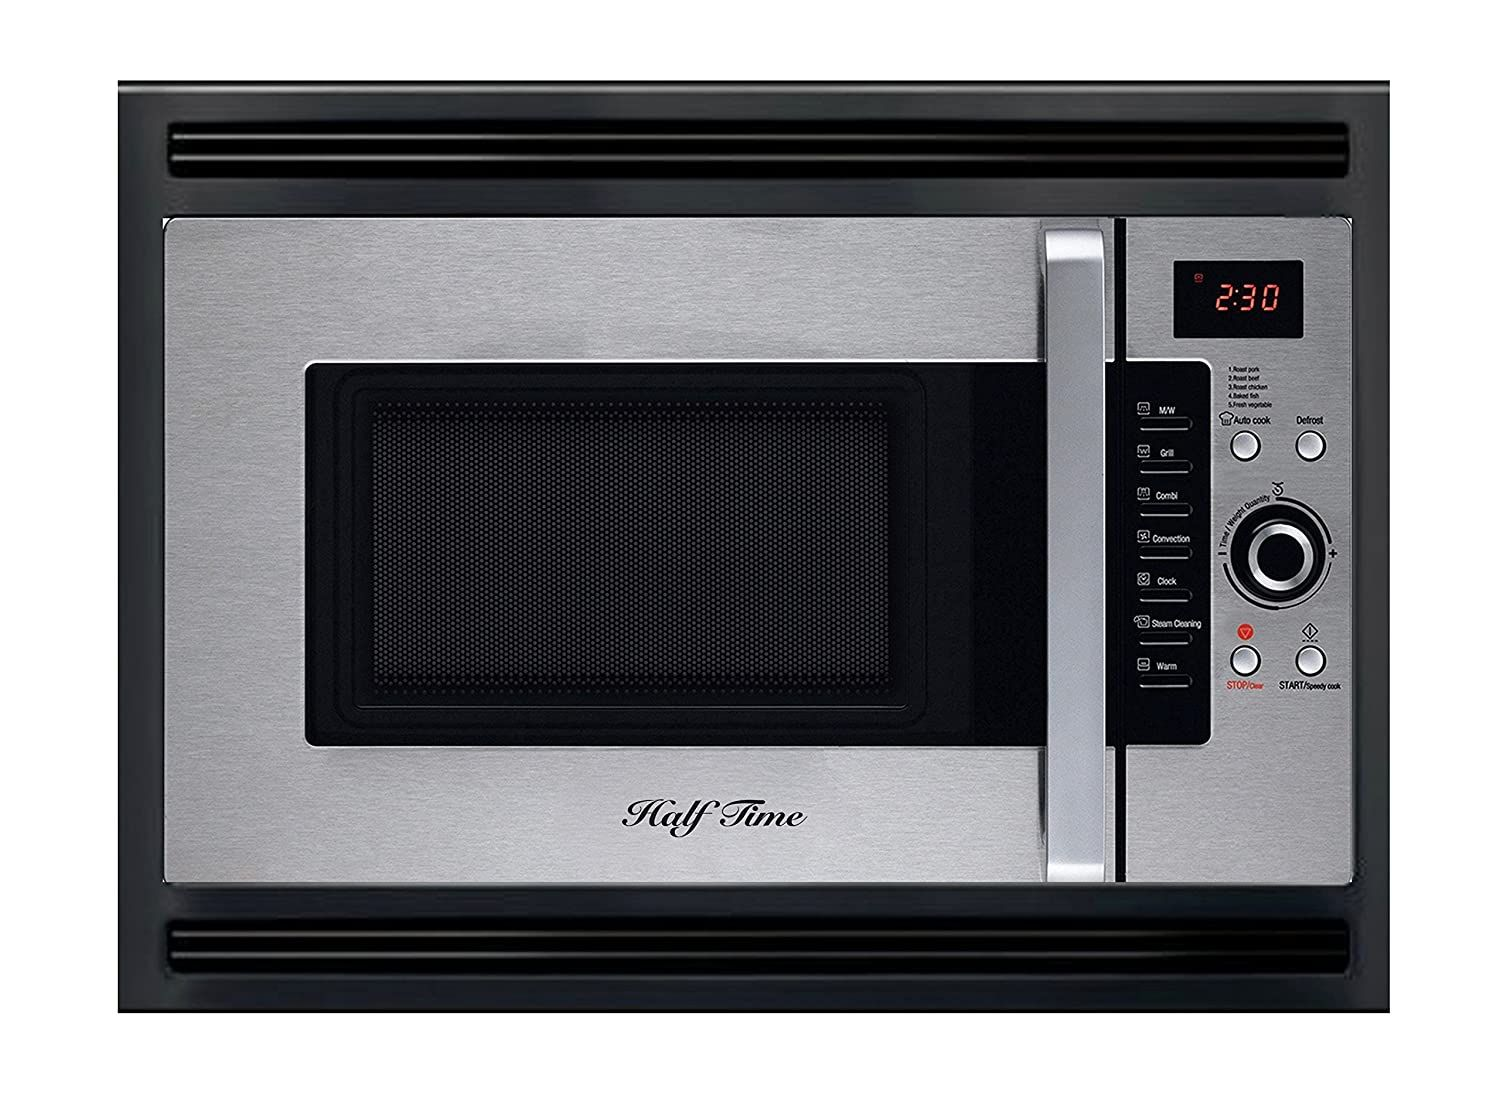 The 8 Best Rv Microwave Convection Ovens To Buy In 2020 Rv Talk In 2020 Microwave Convection Oven Convection Microwaves Microwave